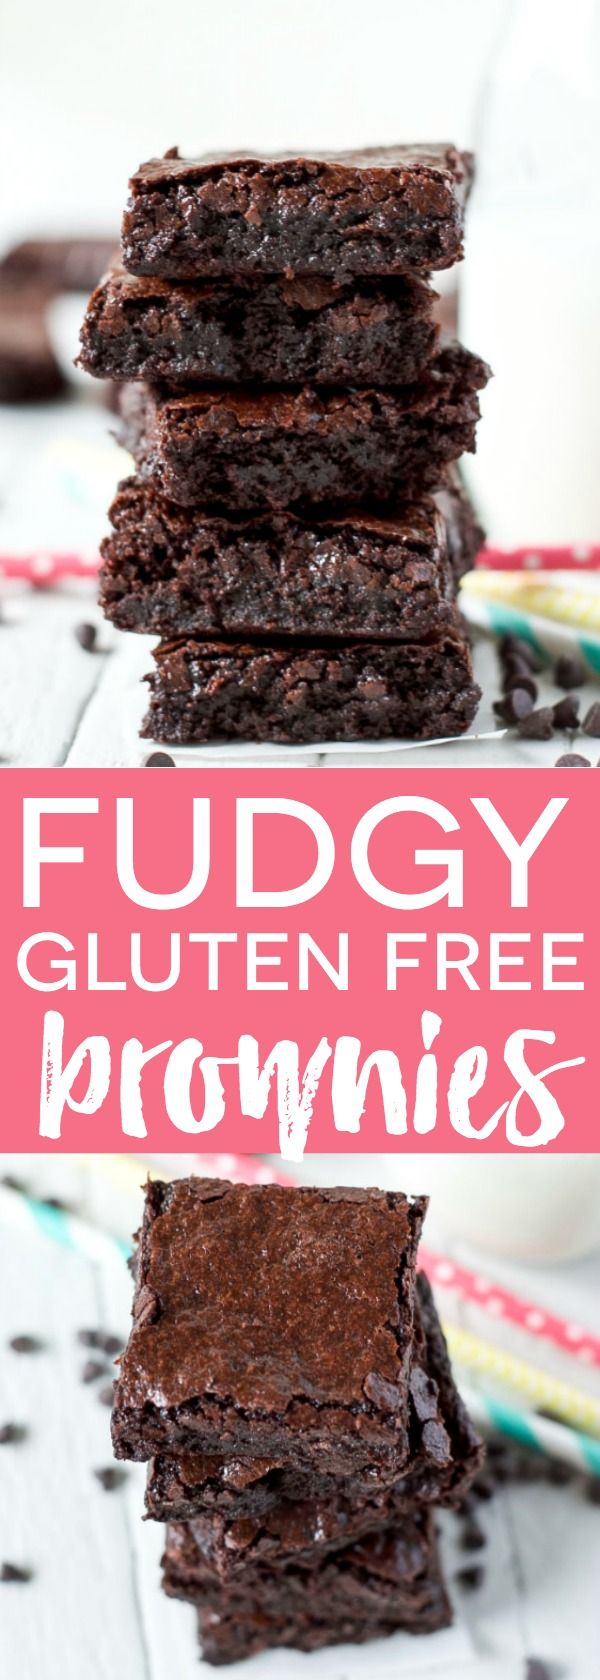 Super Fudgy Gluten Free Brownies (a Ghirardelli copycat recipe) from @whattheforkblog | whattheforkfoodblog.com